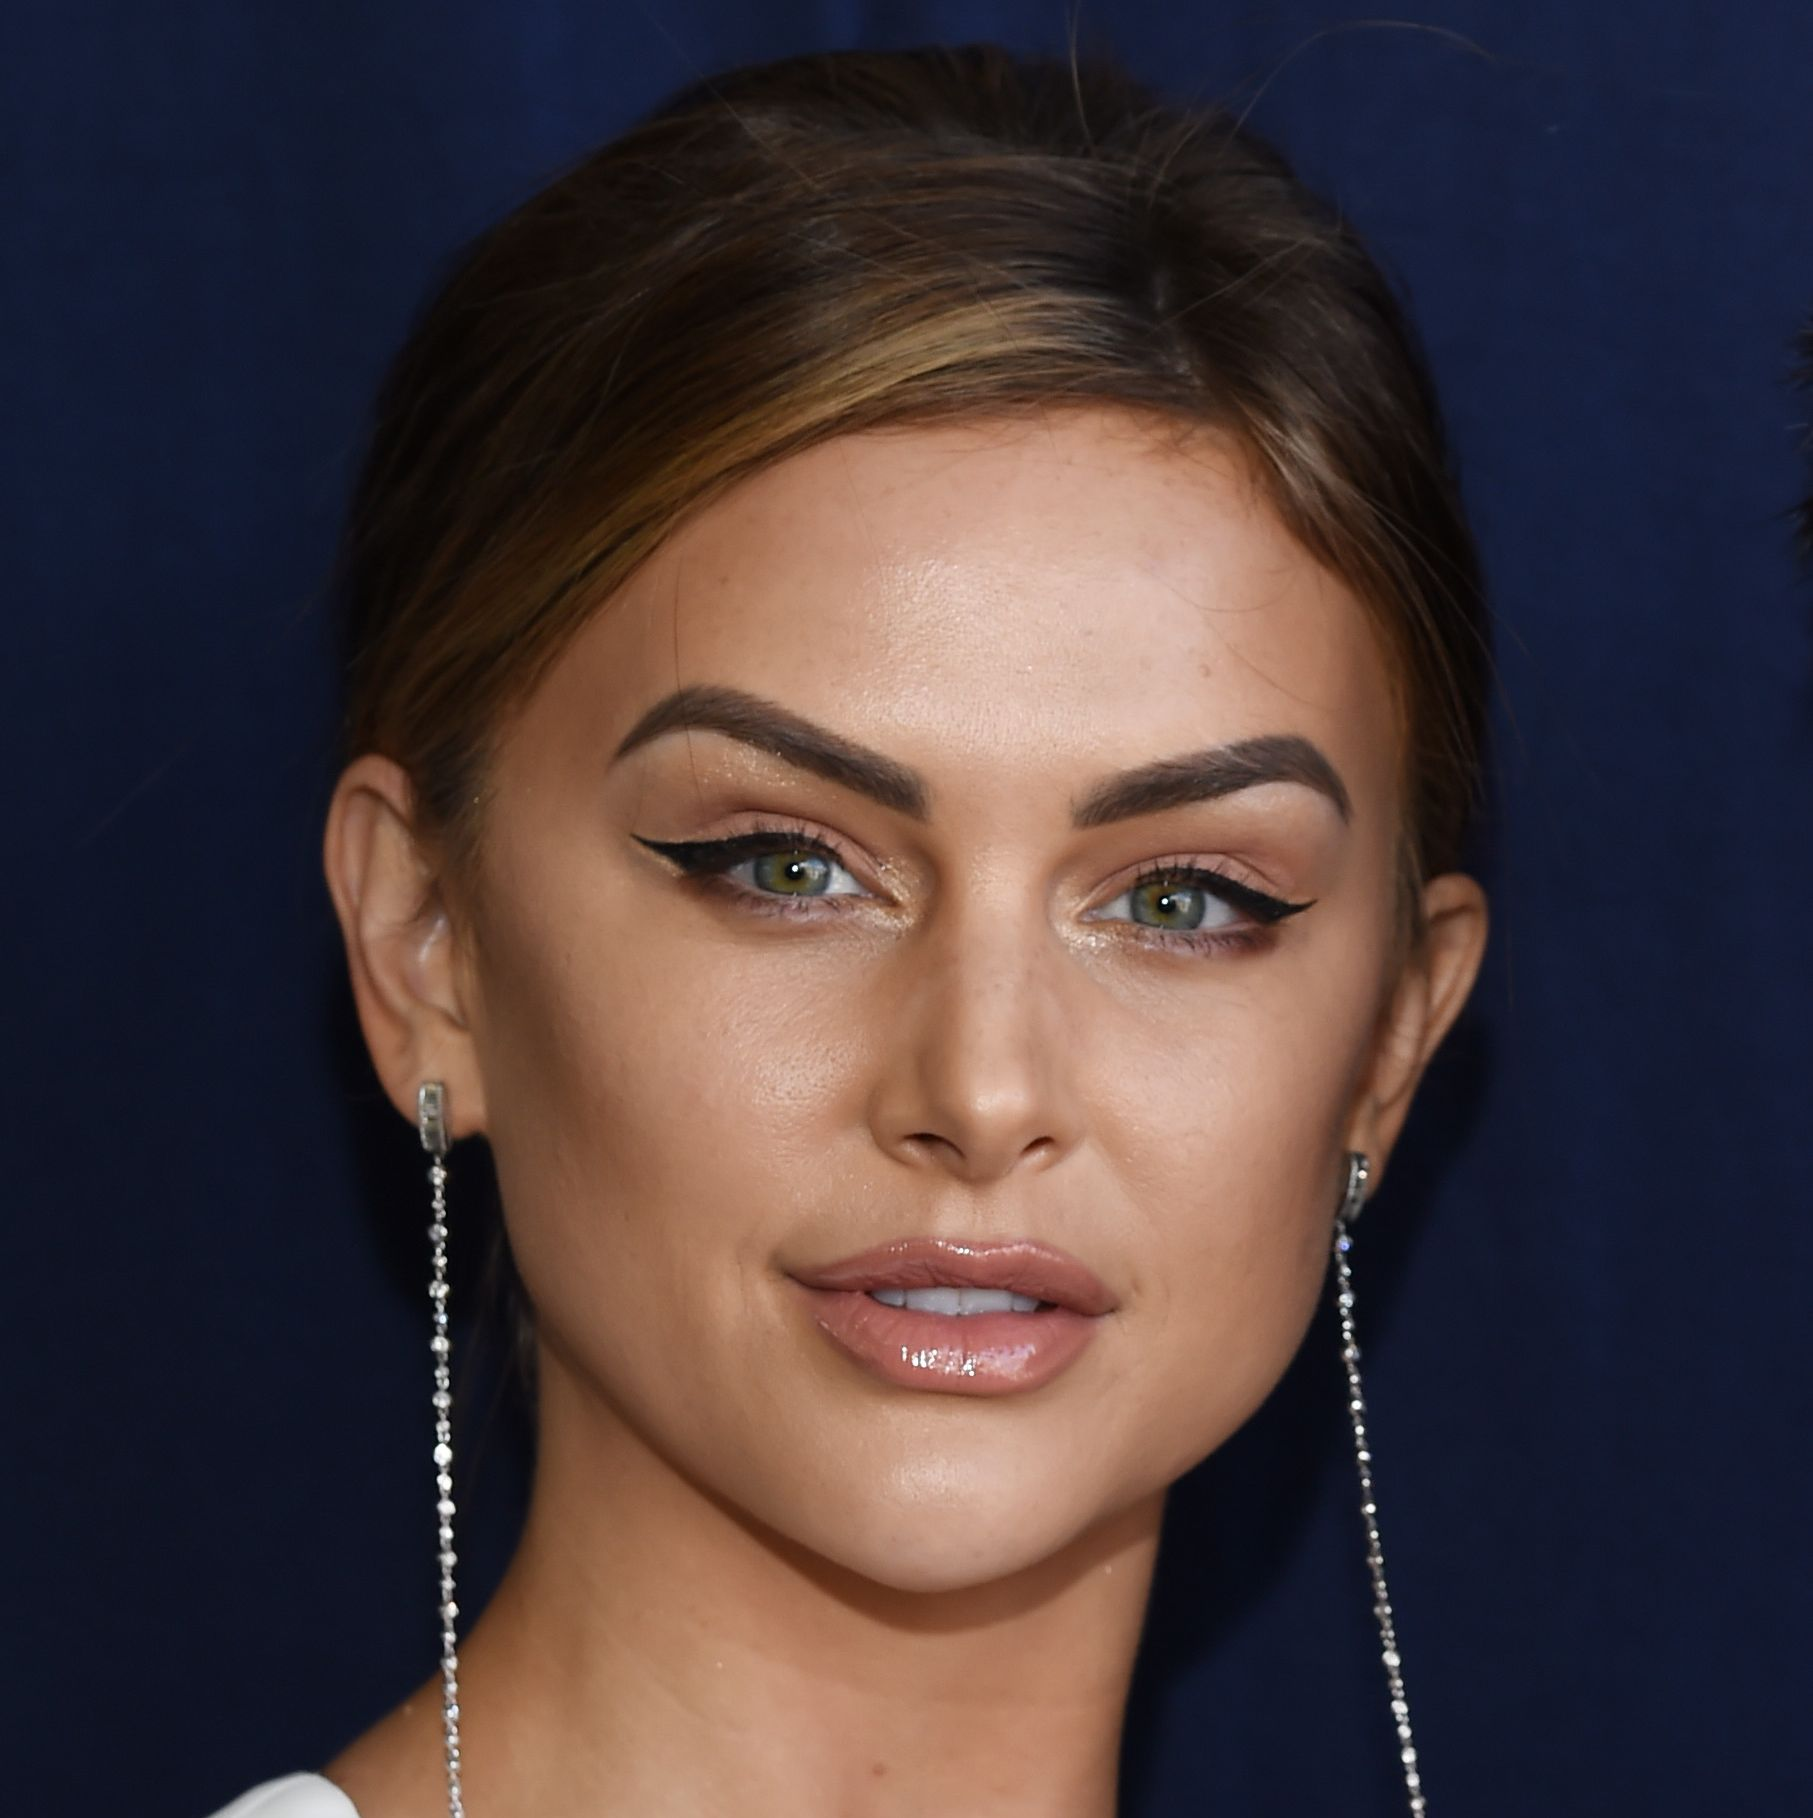 'Vanderpump Rules' Star Lala Kent Just Revealed That She Struggles With Alcoholism